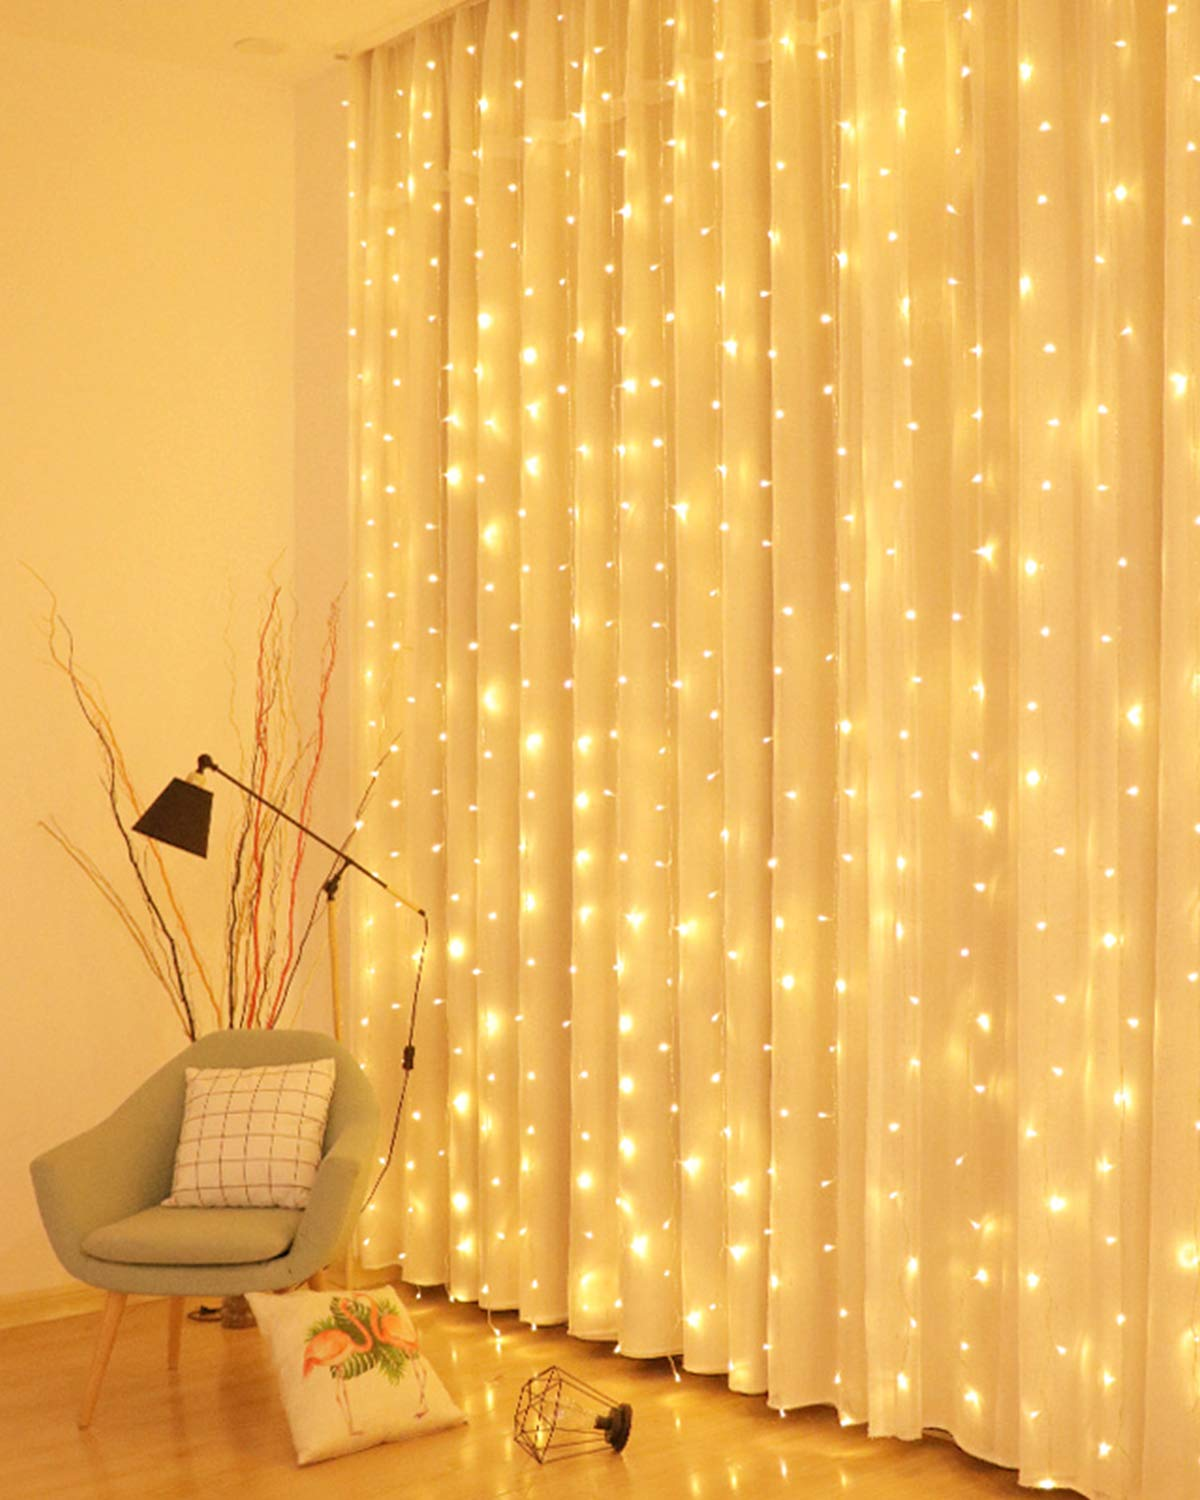 Litogo 300LED Curtain Lights, 3x3m Waterfall Fairy Lights 8 Modes USB Plug in Twinkle Wall Lights Hanging Window Silver Wire String Lights Indoor for Bedroom Wedding Xmas Party Birthday (Warm White)